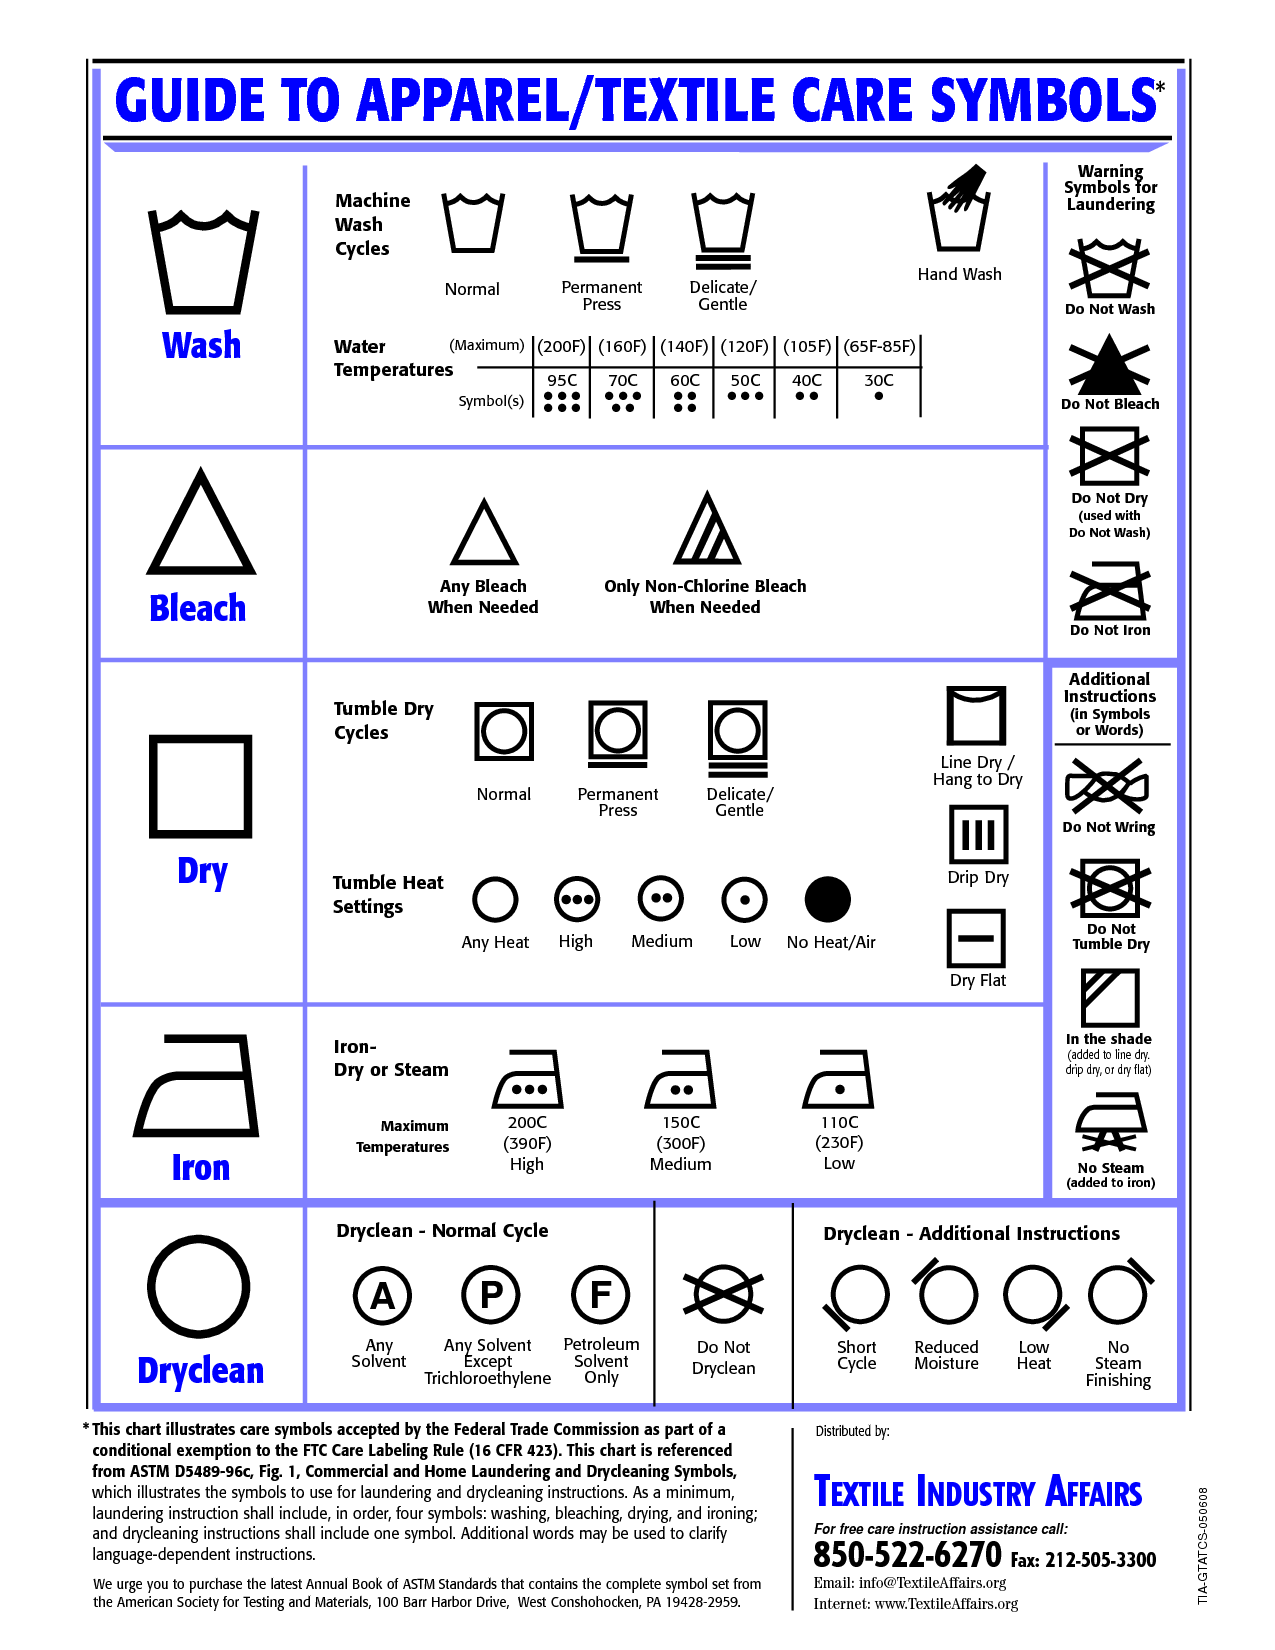 Wash Symbols I Know Vs Uses These Symbols And I Never Knew What